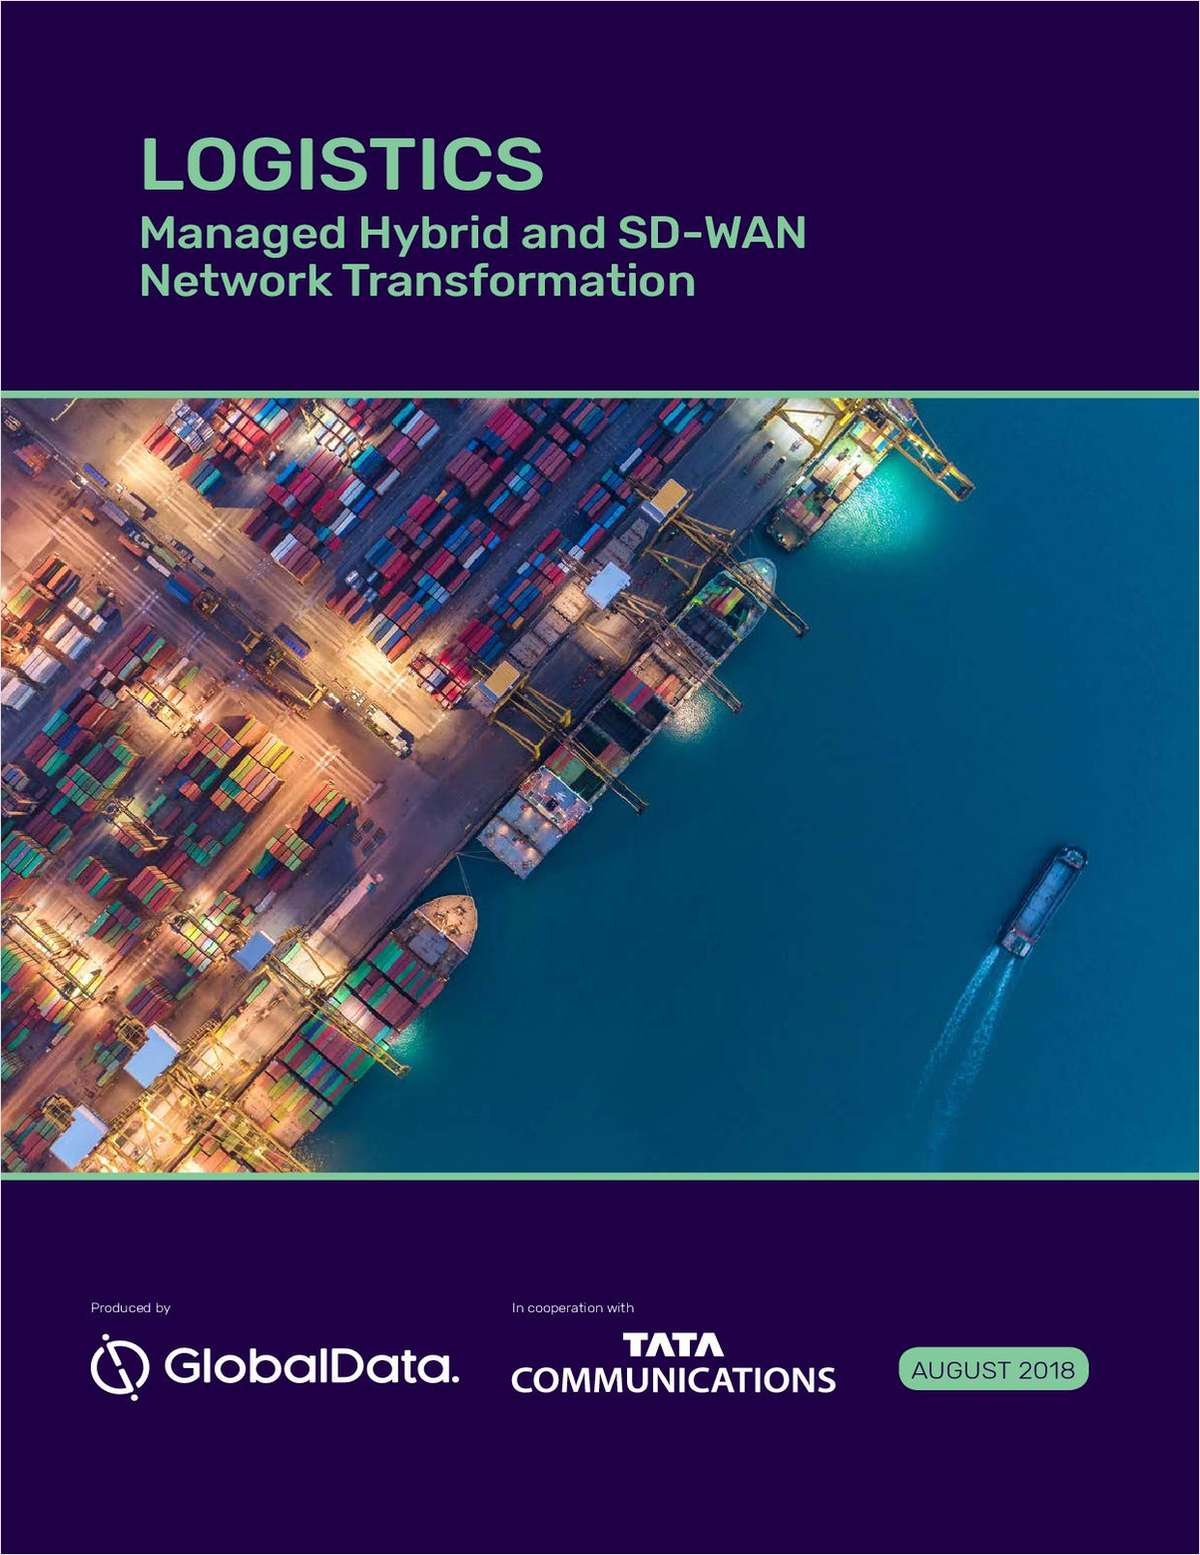 Managed Hybrid and SD-WAN Network Transformation